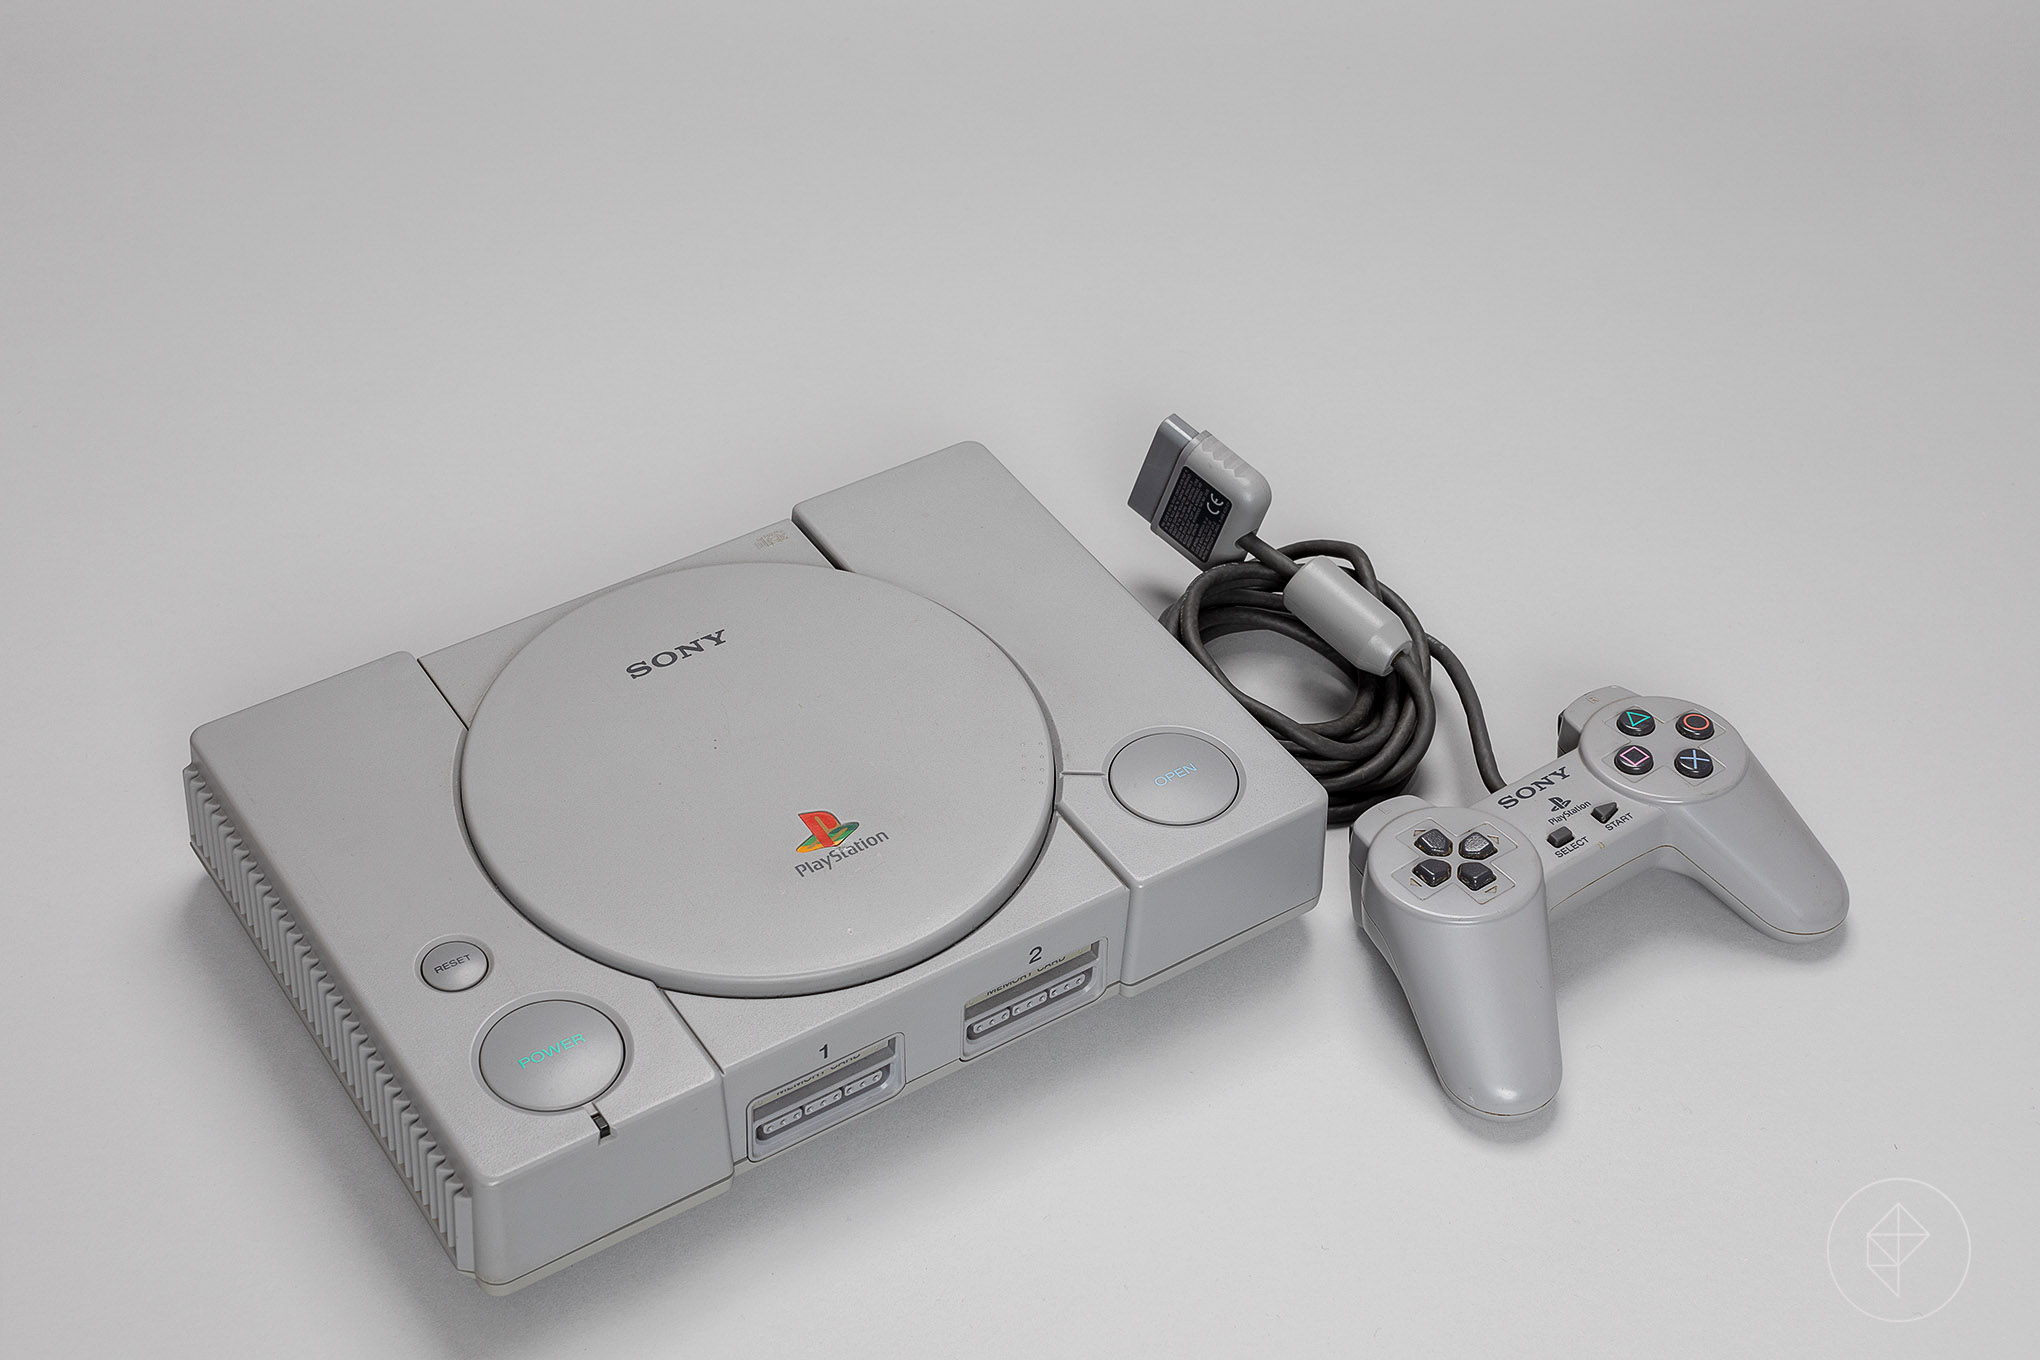 The original Playstation and controller shot on a grey background